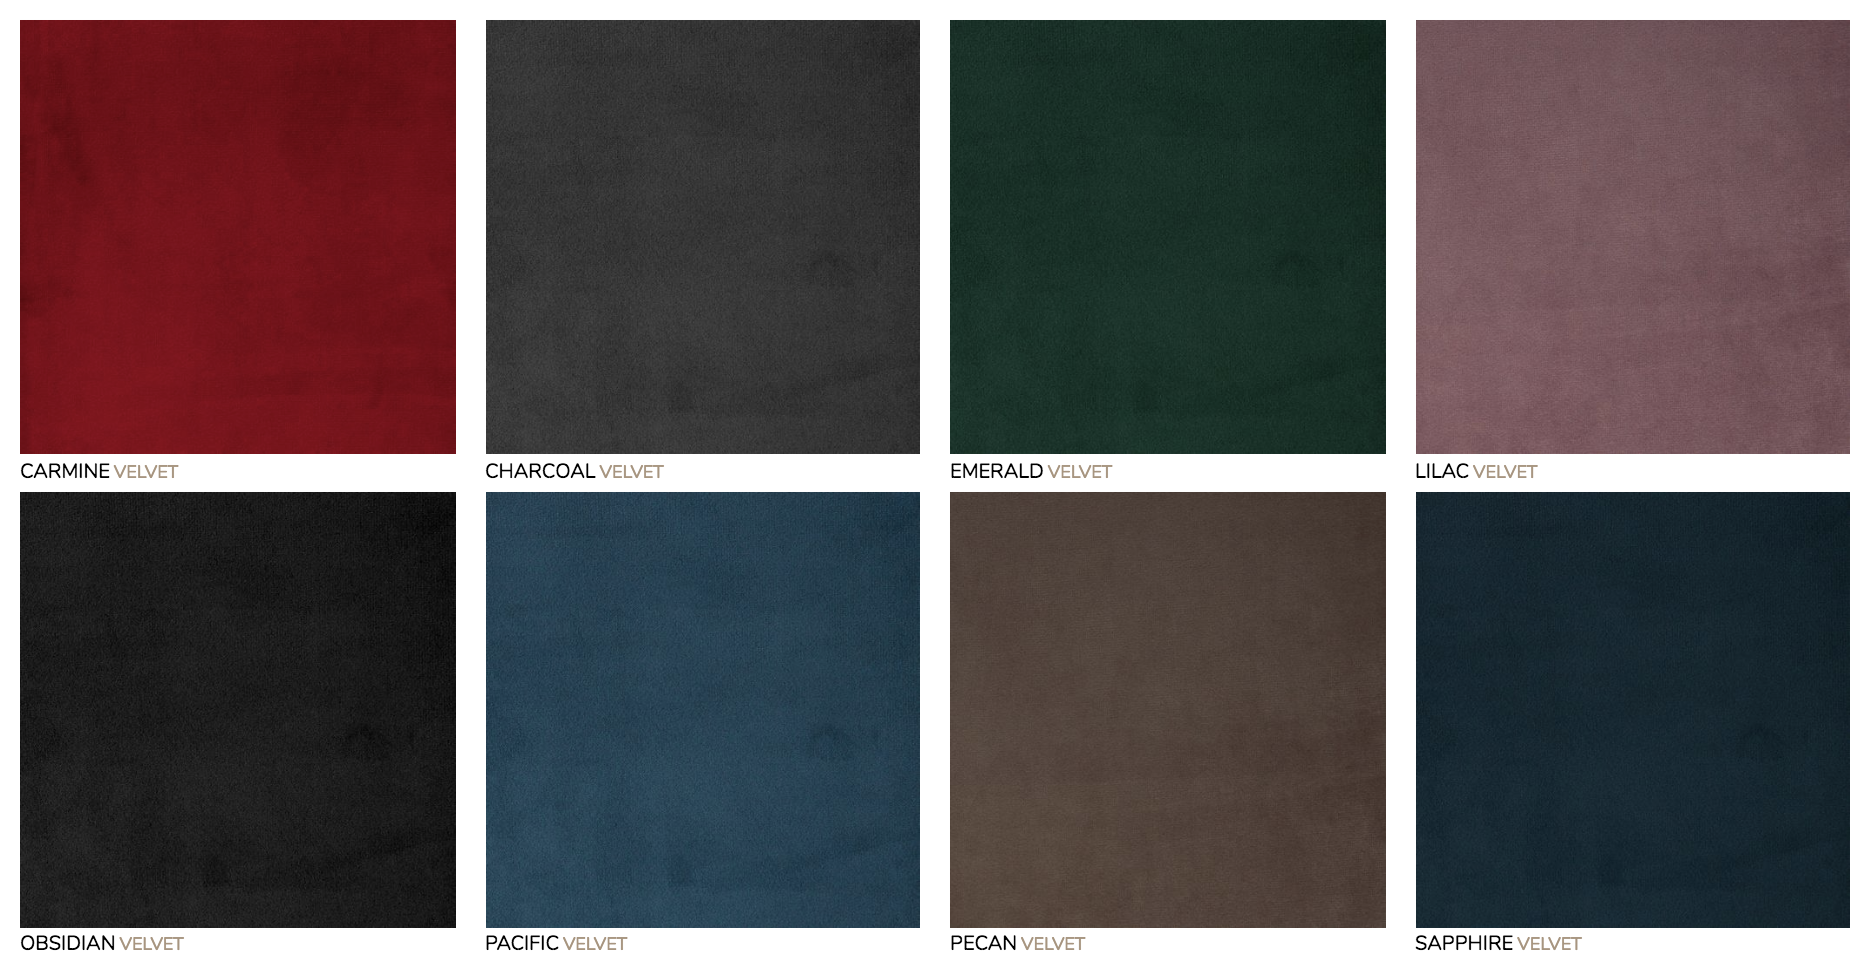 Velvet Cover:  Our Velvet covers have a distinctly soft feel with a water repellent finish, and the material is extra-heavy duty double rub tested for durability.